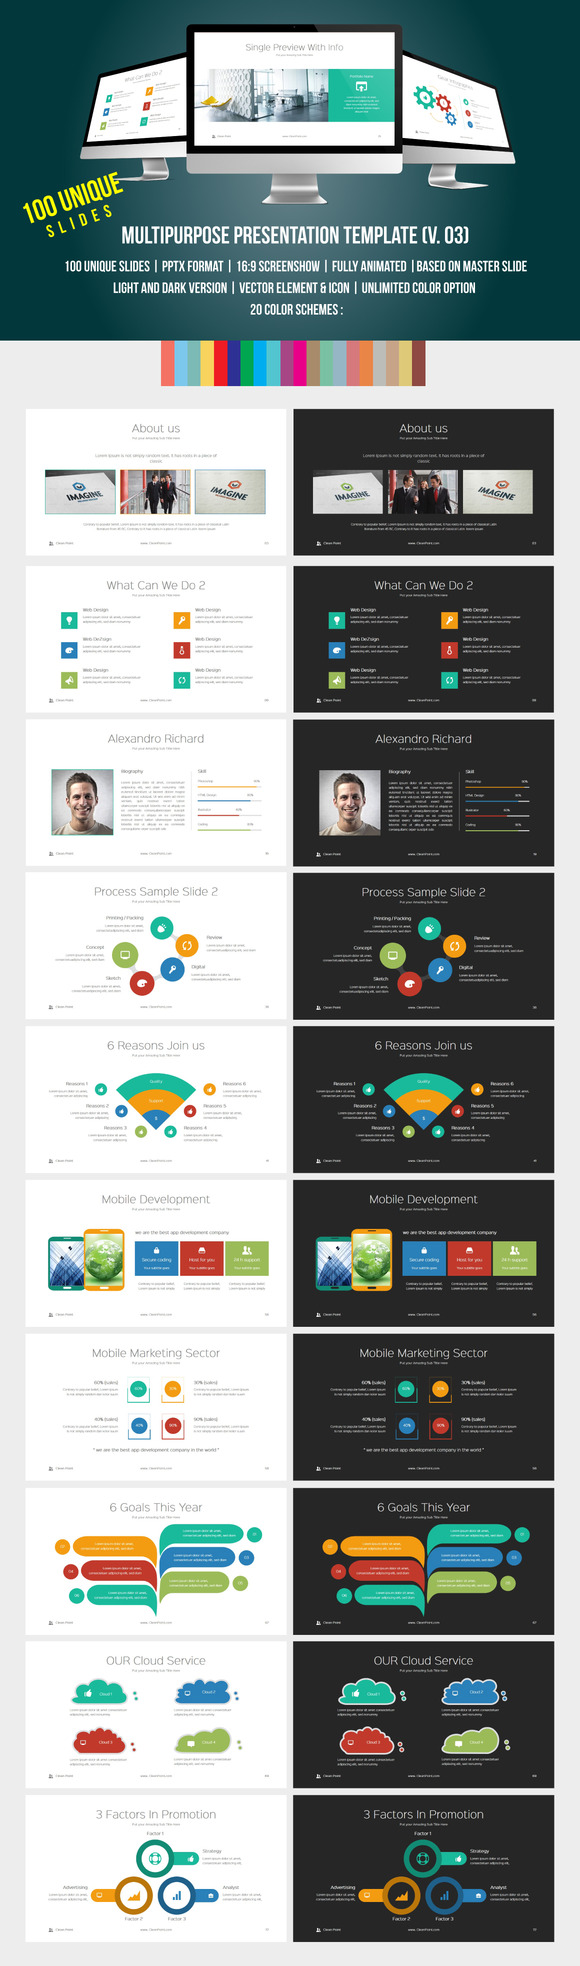 Multipurpose PowerPoint Template 03